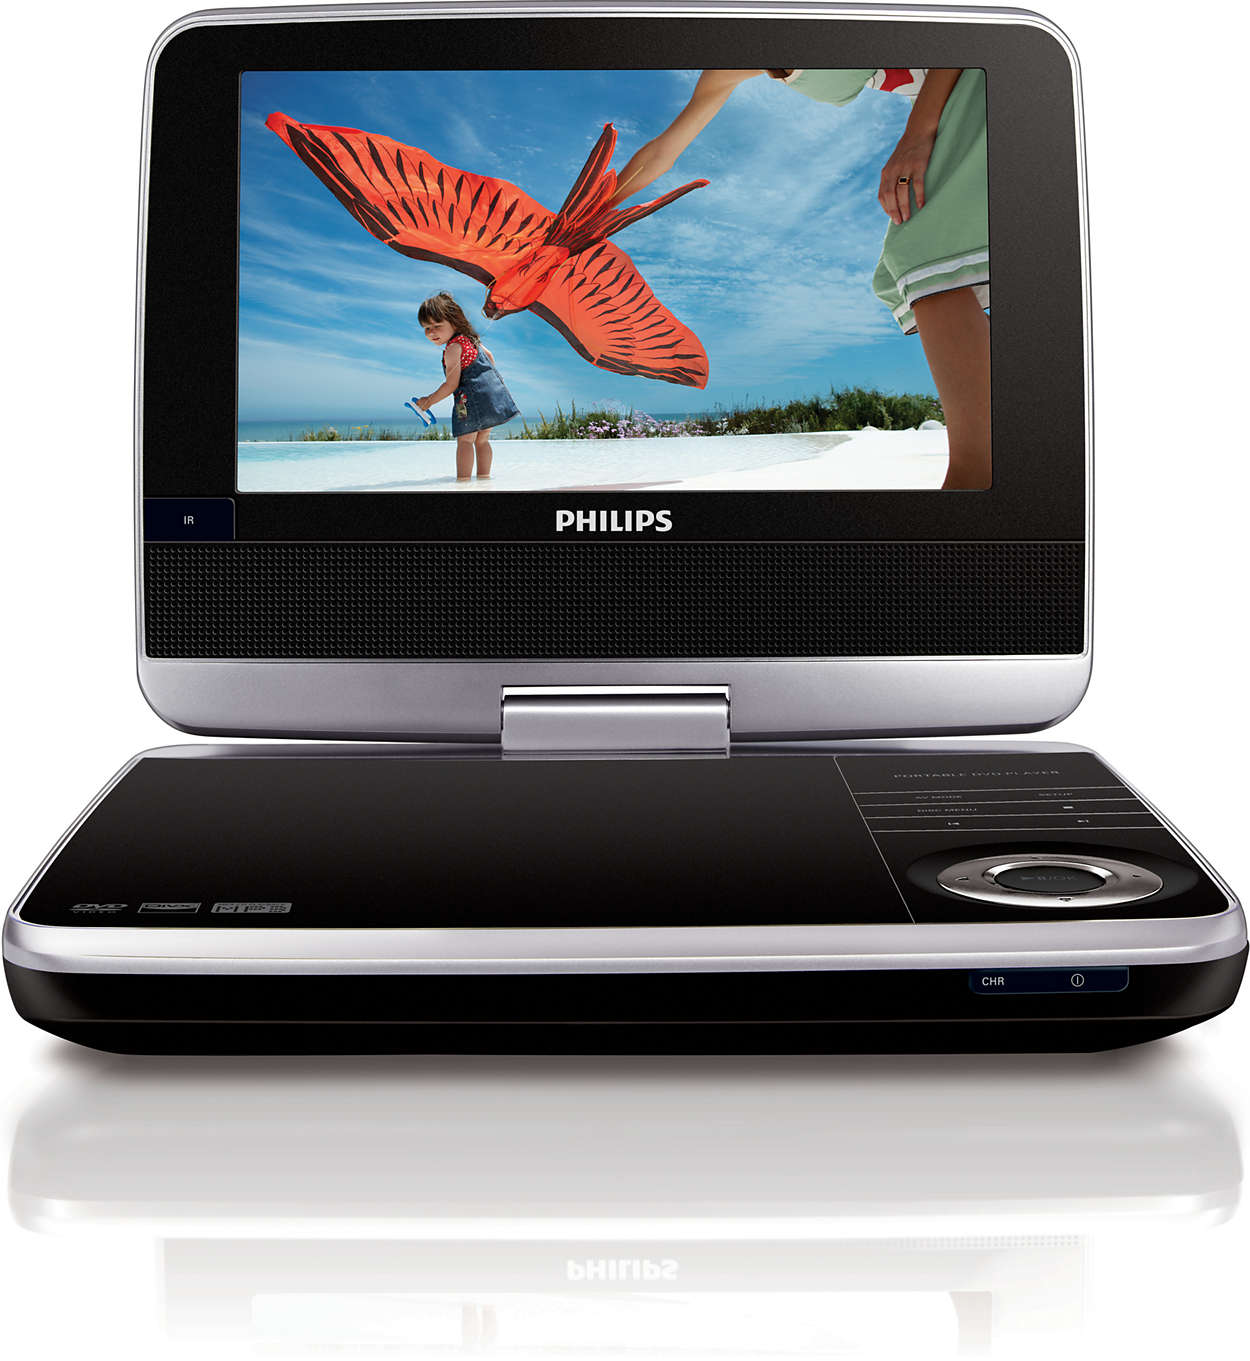 tragbarer dvd player pd7040 12 philips. Black Bedroom Furniture Sets. Home Design Ideas